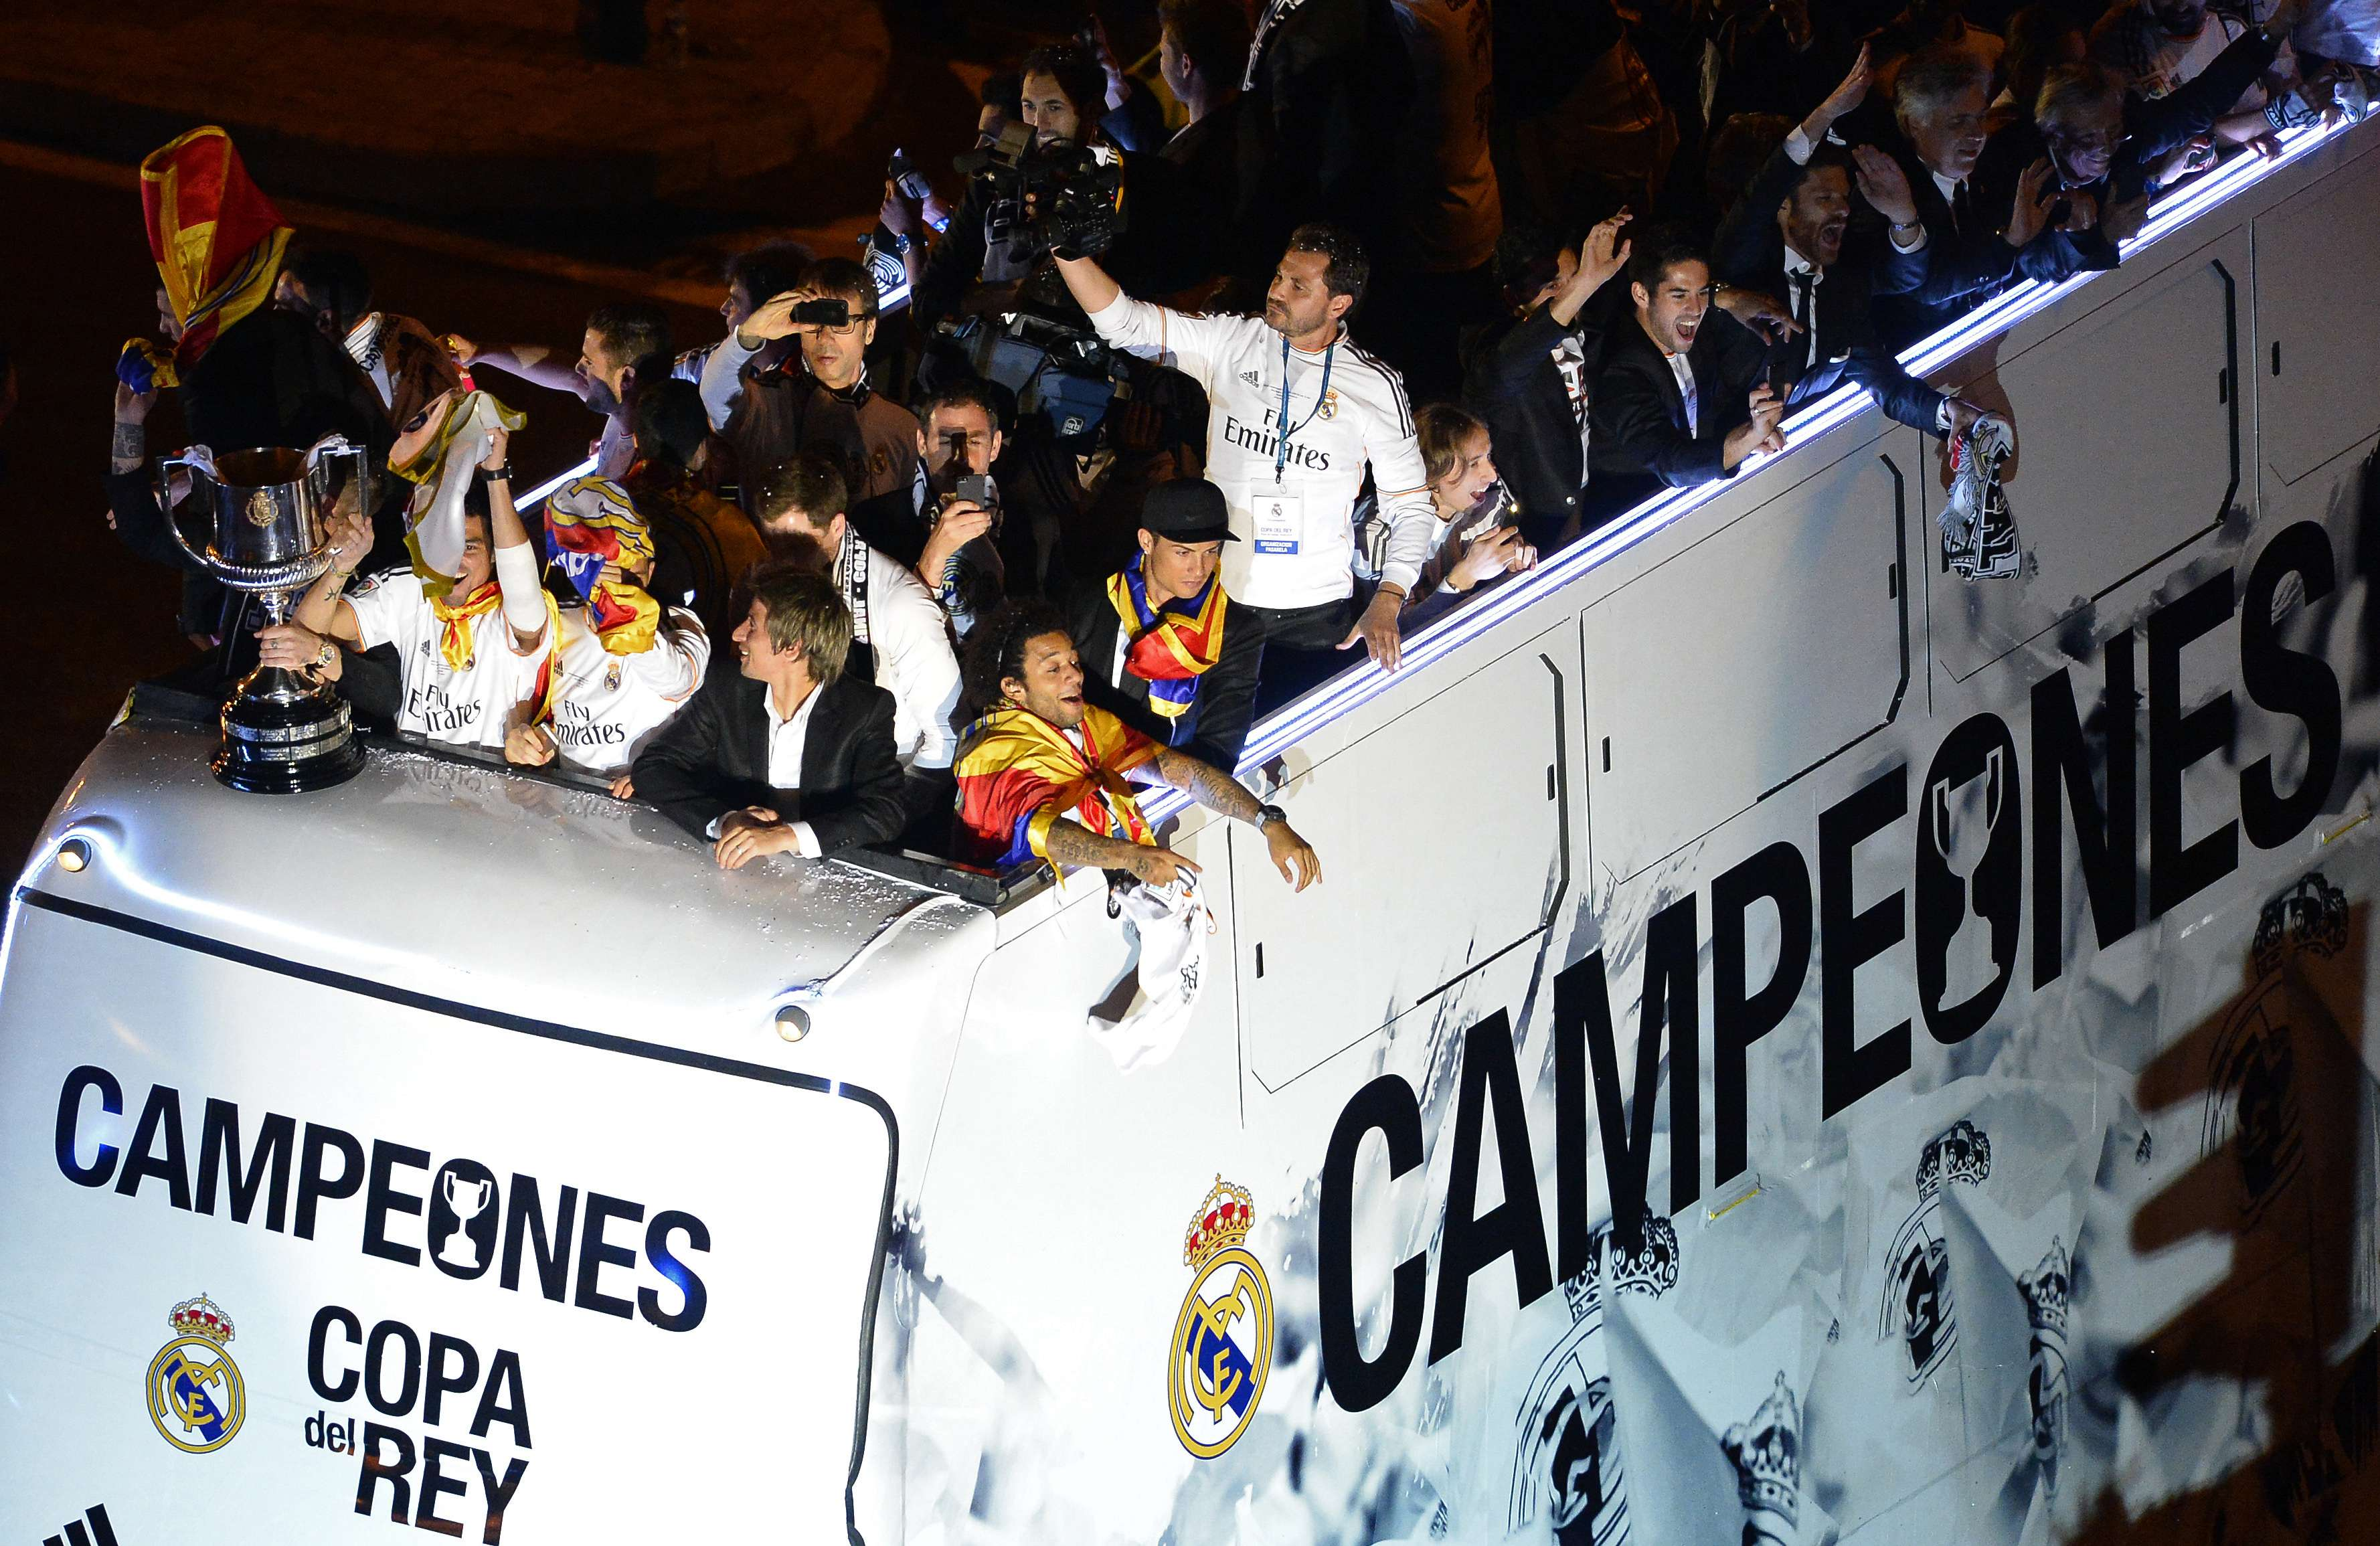 Real Madrid fans, players celebrate Copa del Rey title